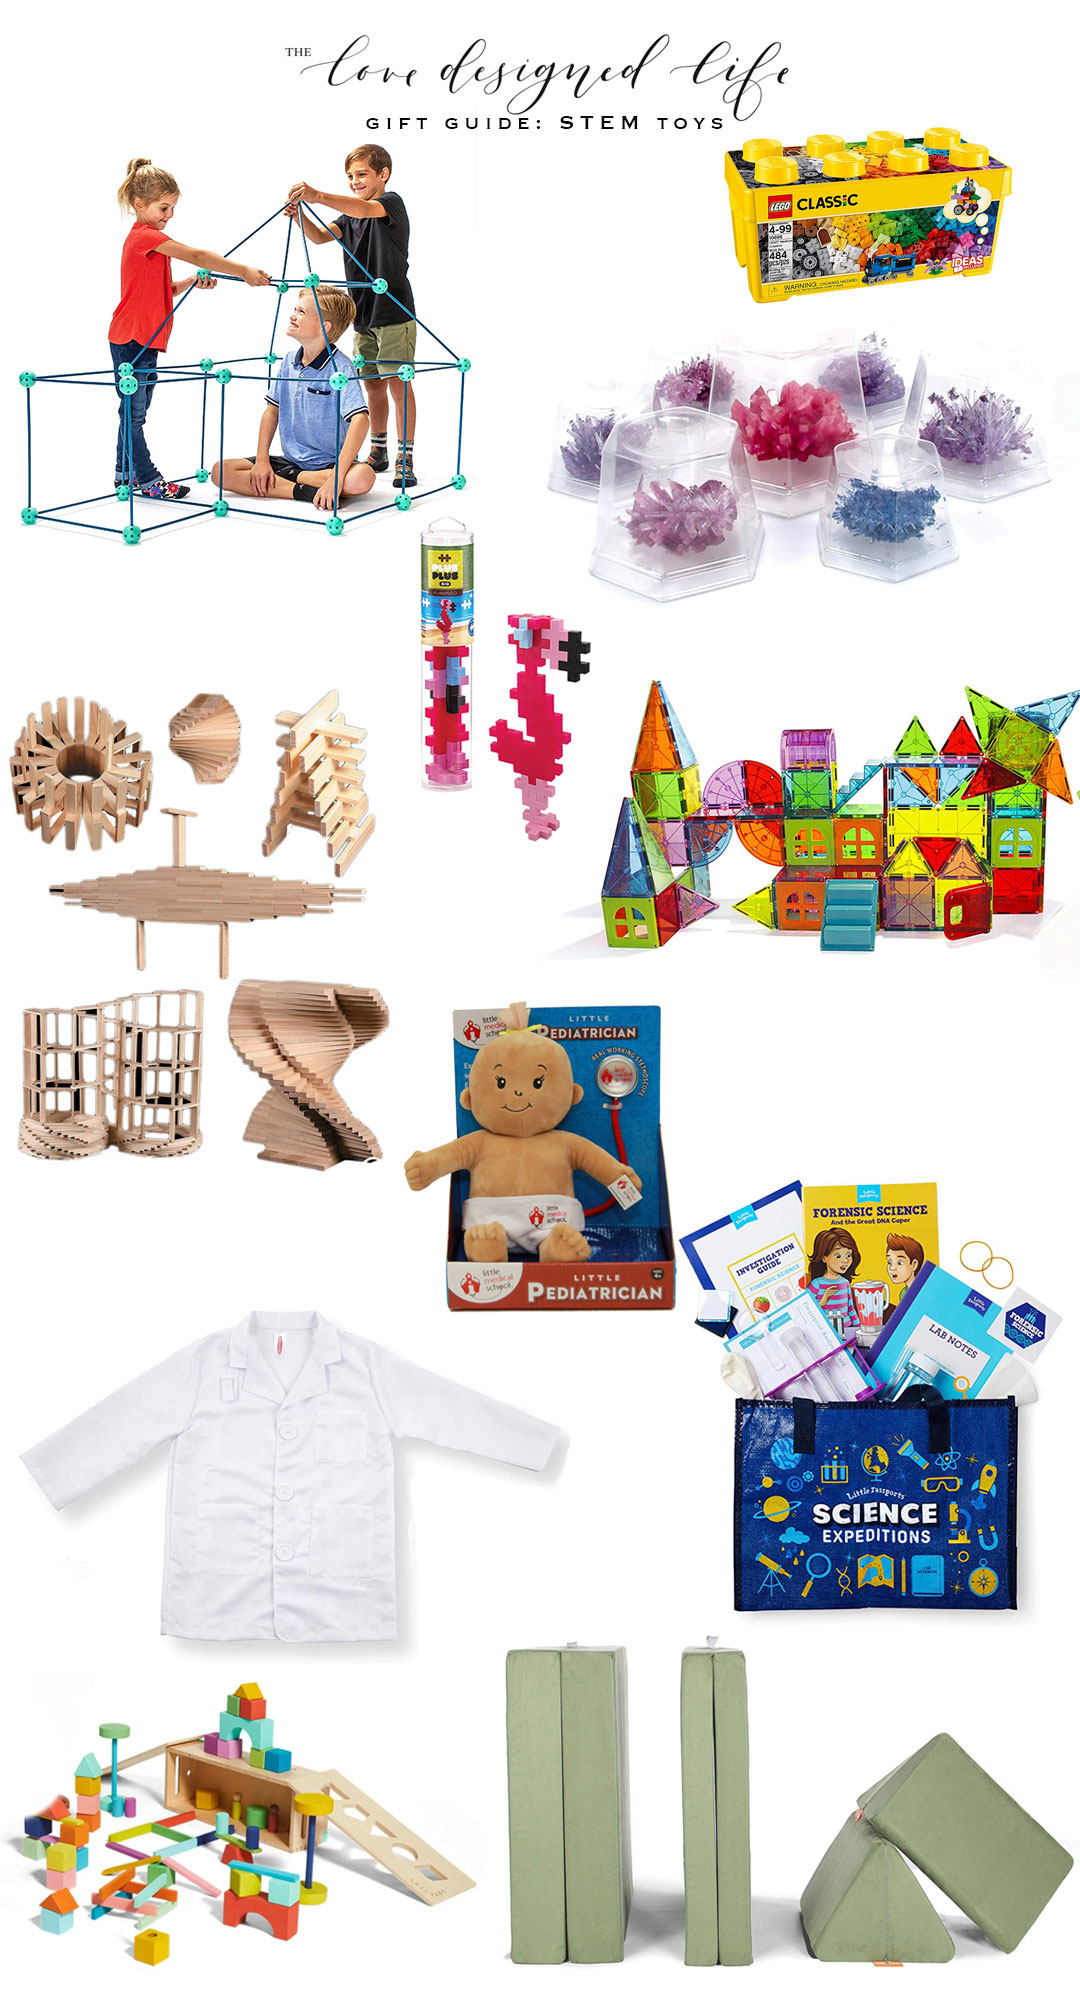 a round up of our favorite STEM toys this holiday season. #theldlgiftguide #giftguide #STEM #STEMtoys